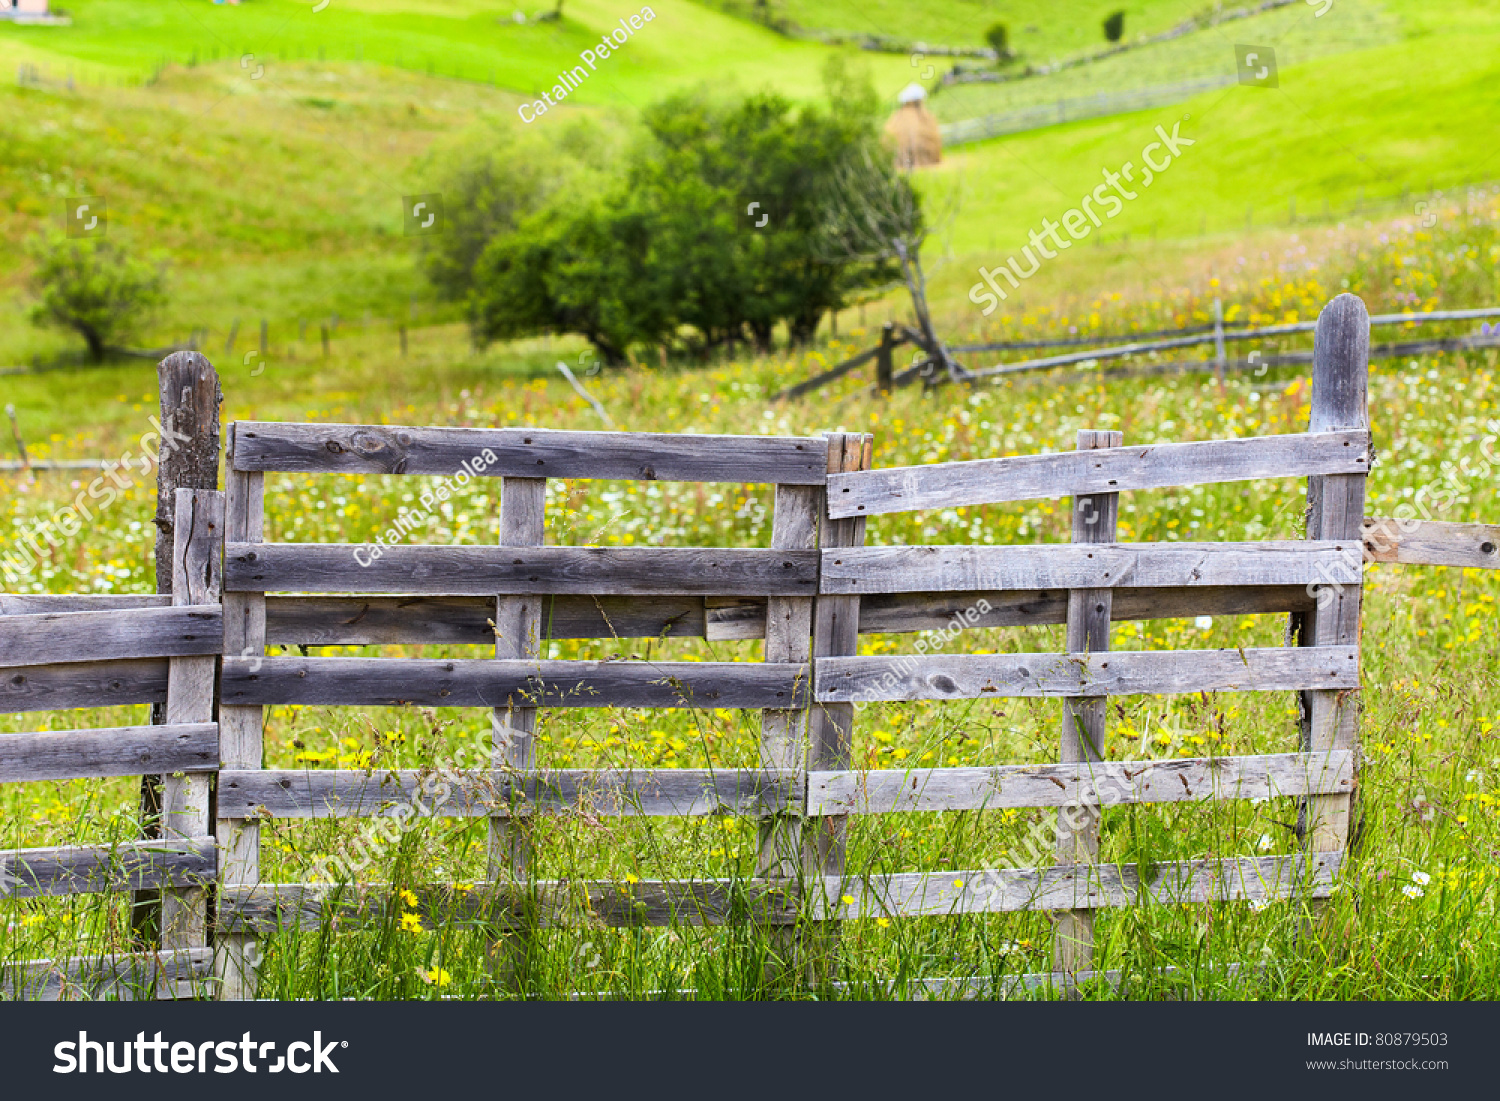 Old Wooden Fence And Gate At A Farm In The Mountains Stock